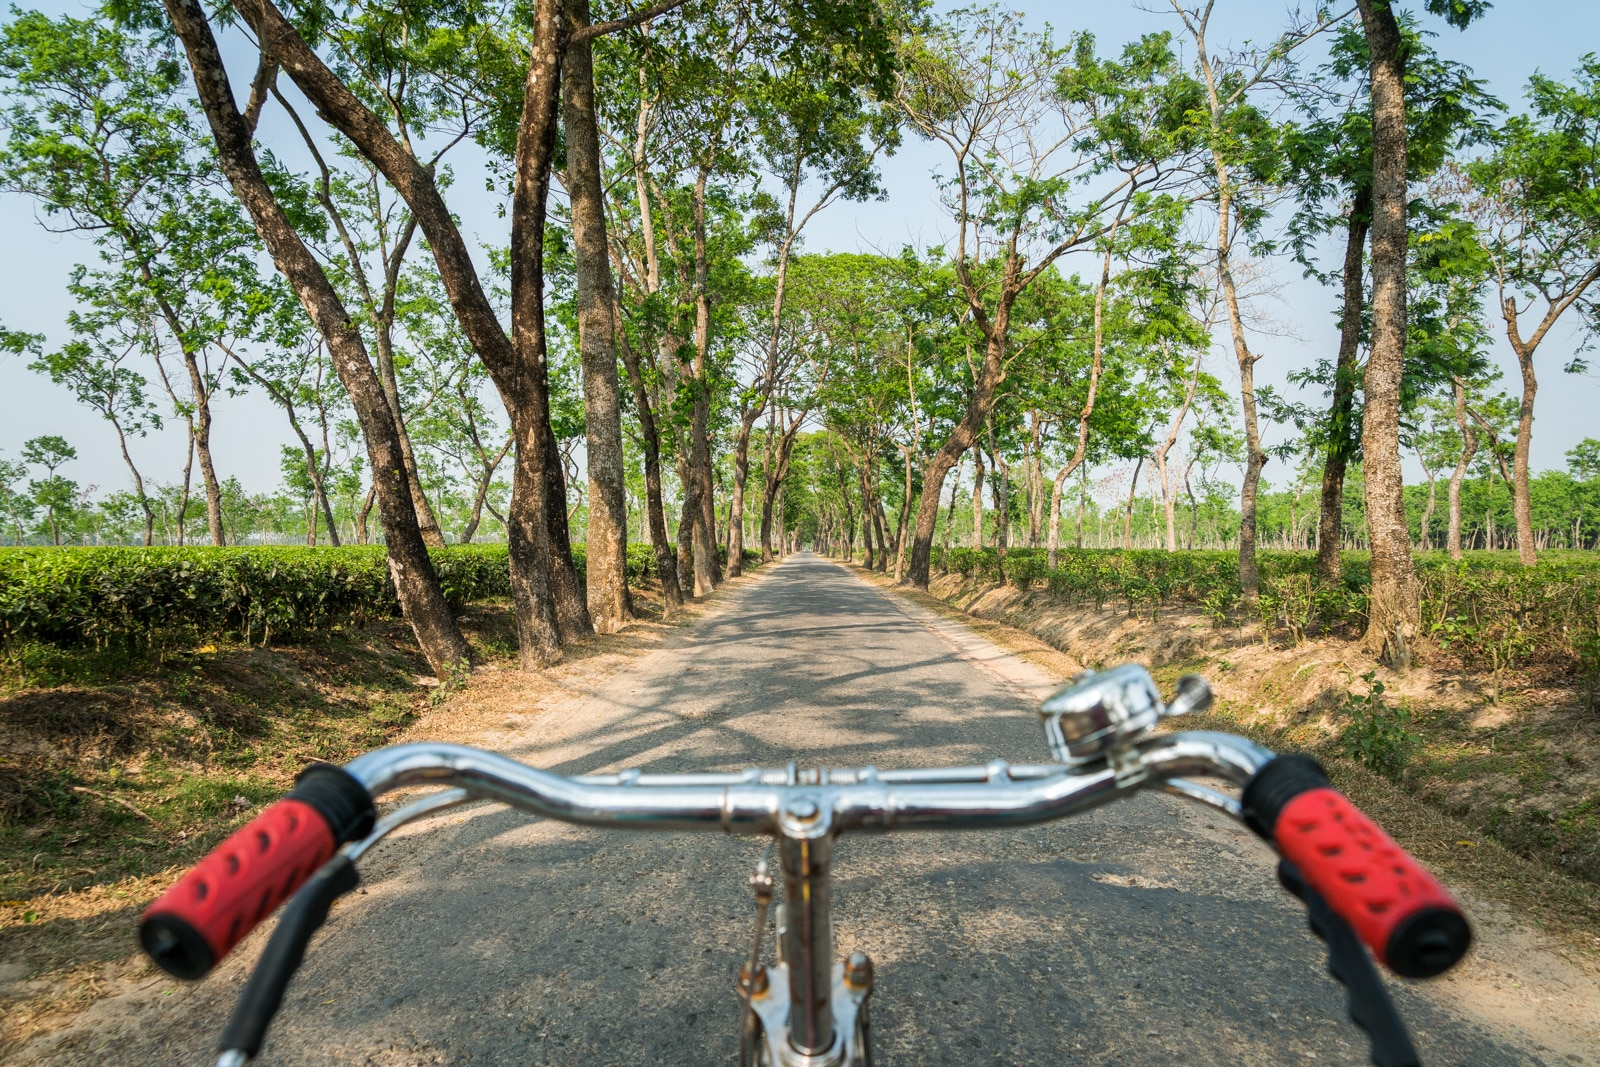 Backpacking in Bangladesh travel guide - Biking in tea plantations of Srimangal - Lost With Purpose travel blog